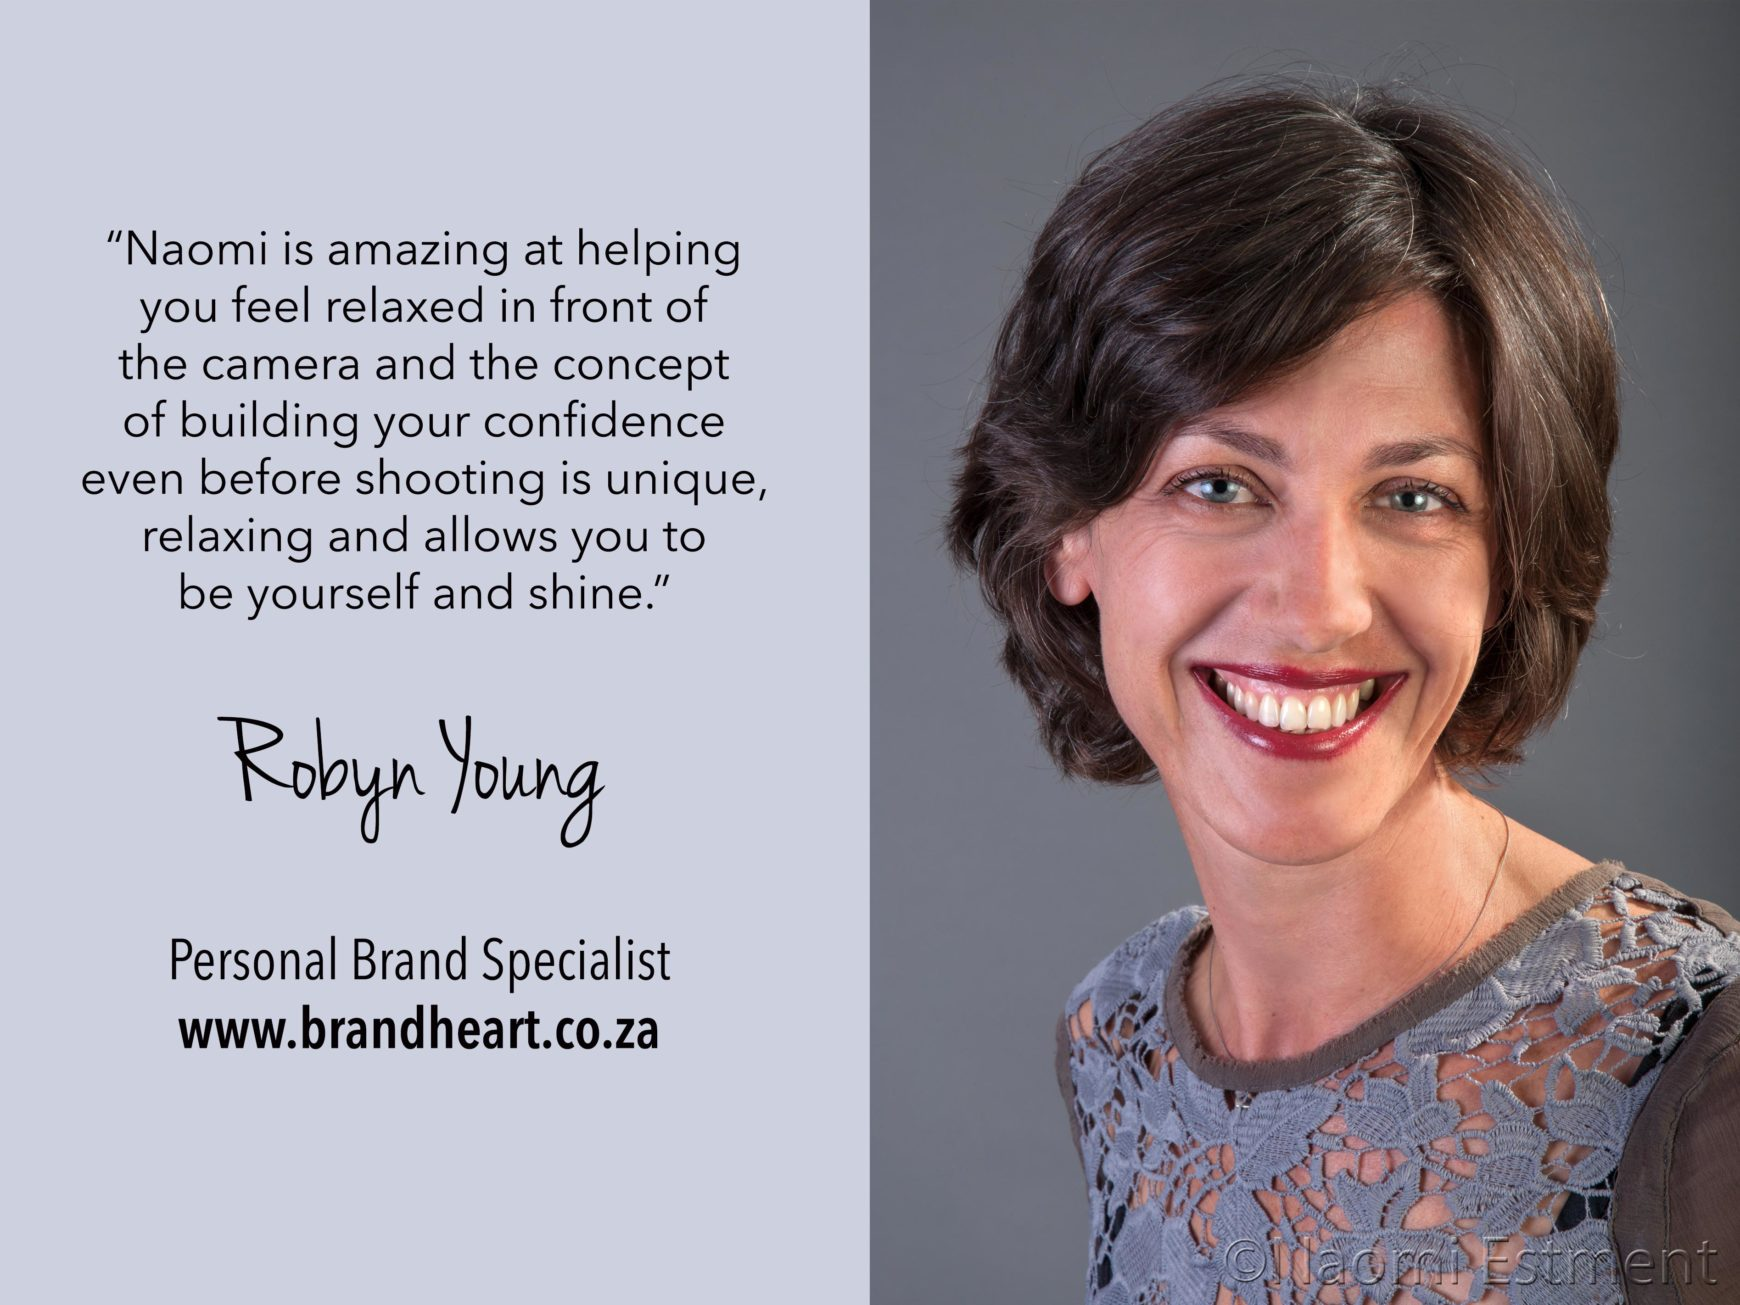 Robyn Young Testimonial for Naomi Estment